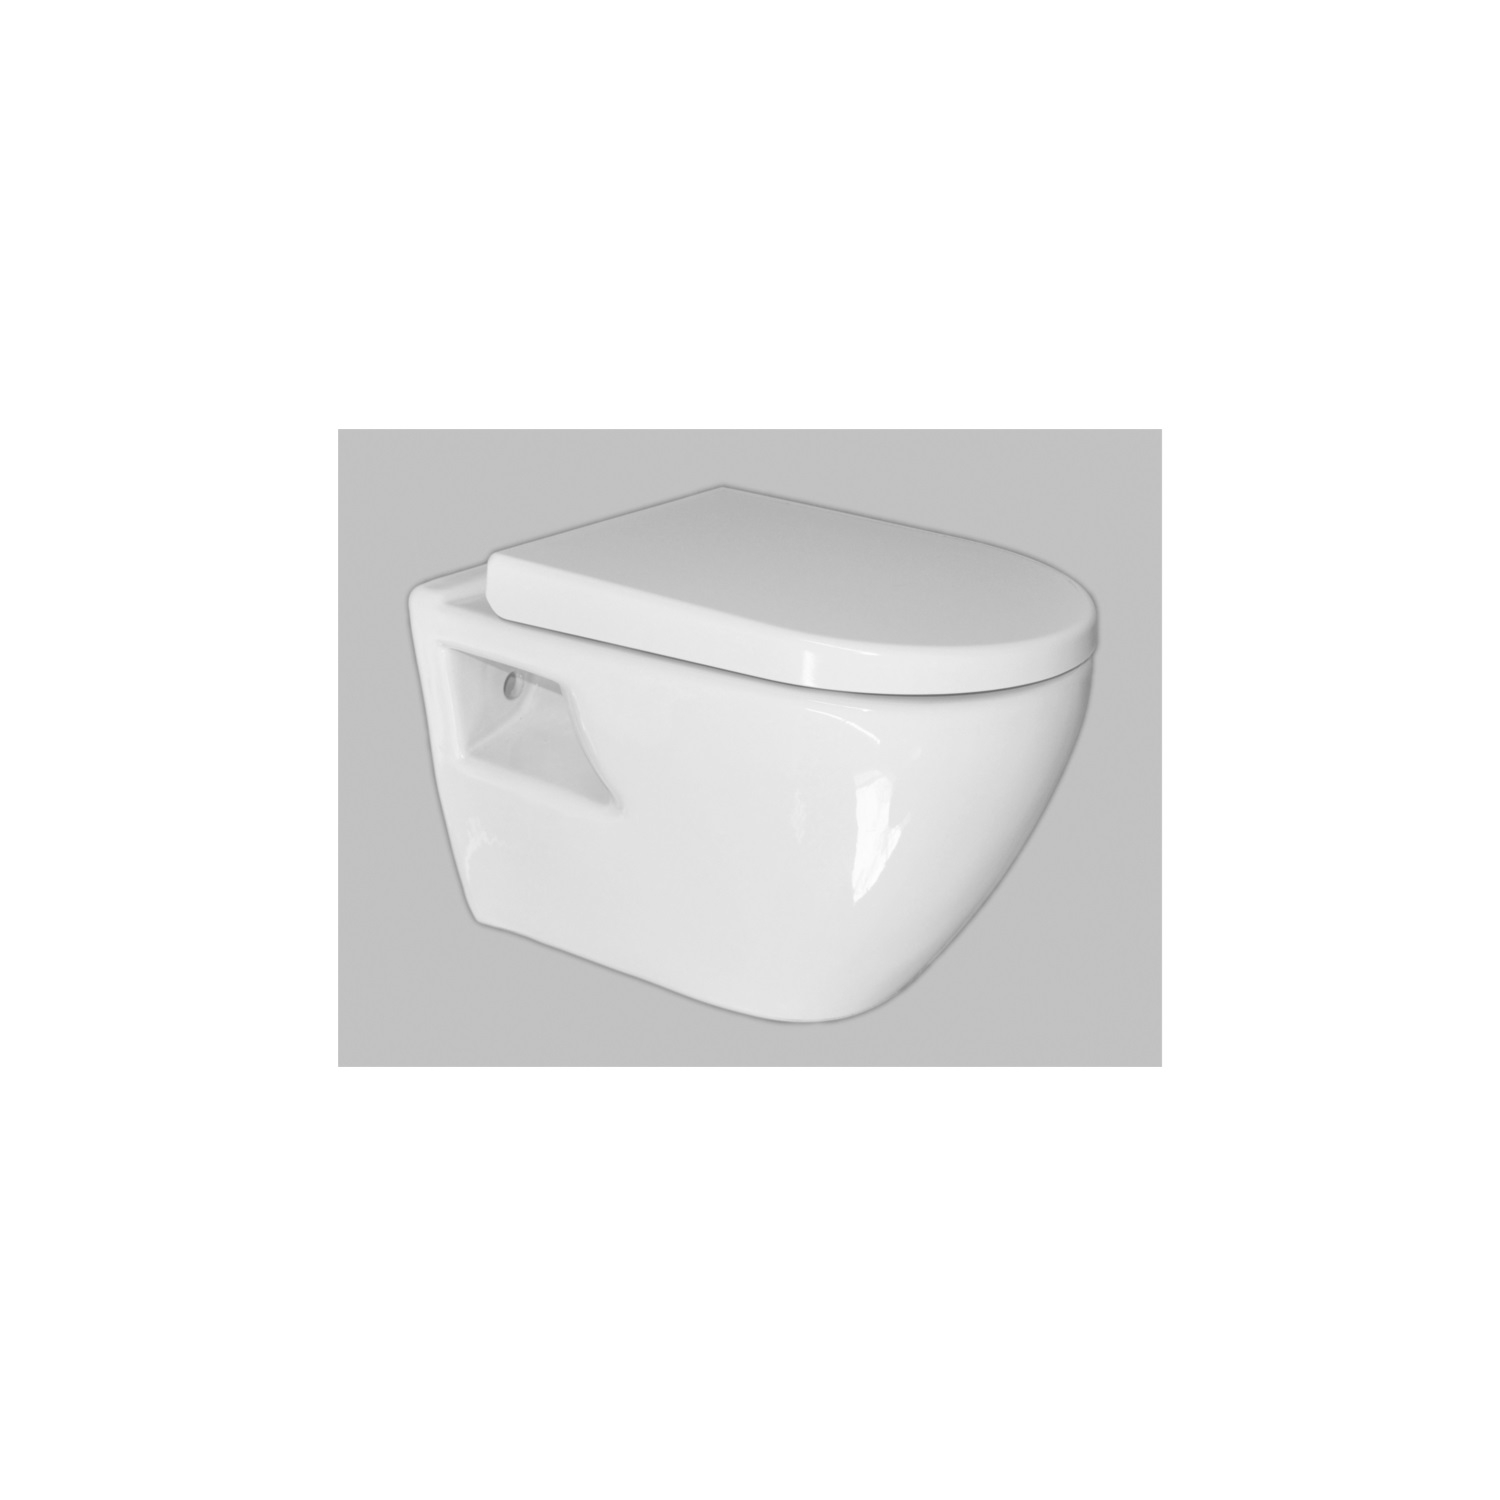 Compact Hangtoilet Hangtoilet Kopen Wandcloset Sanicare Soft Close Toiletzitting